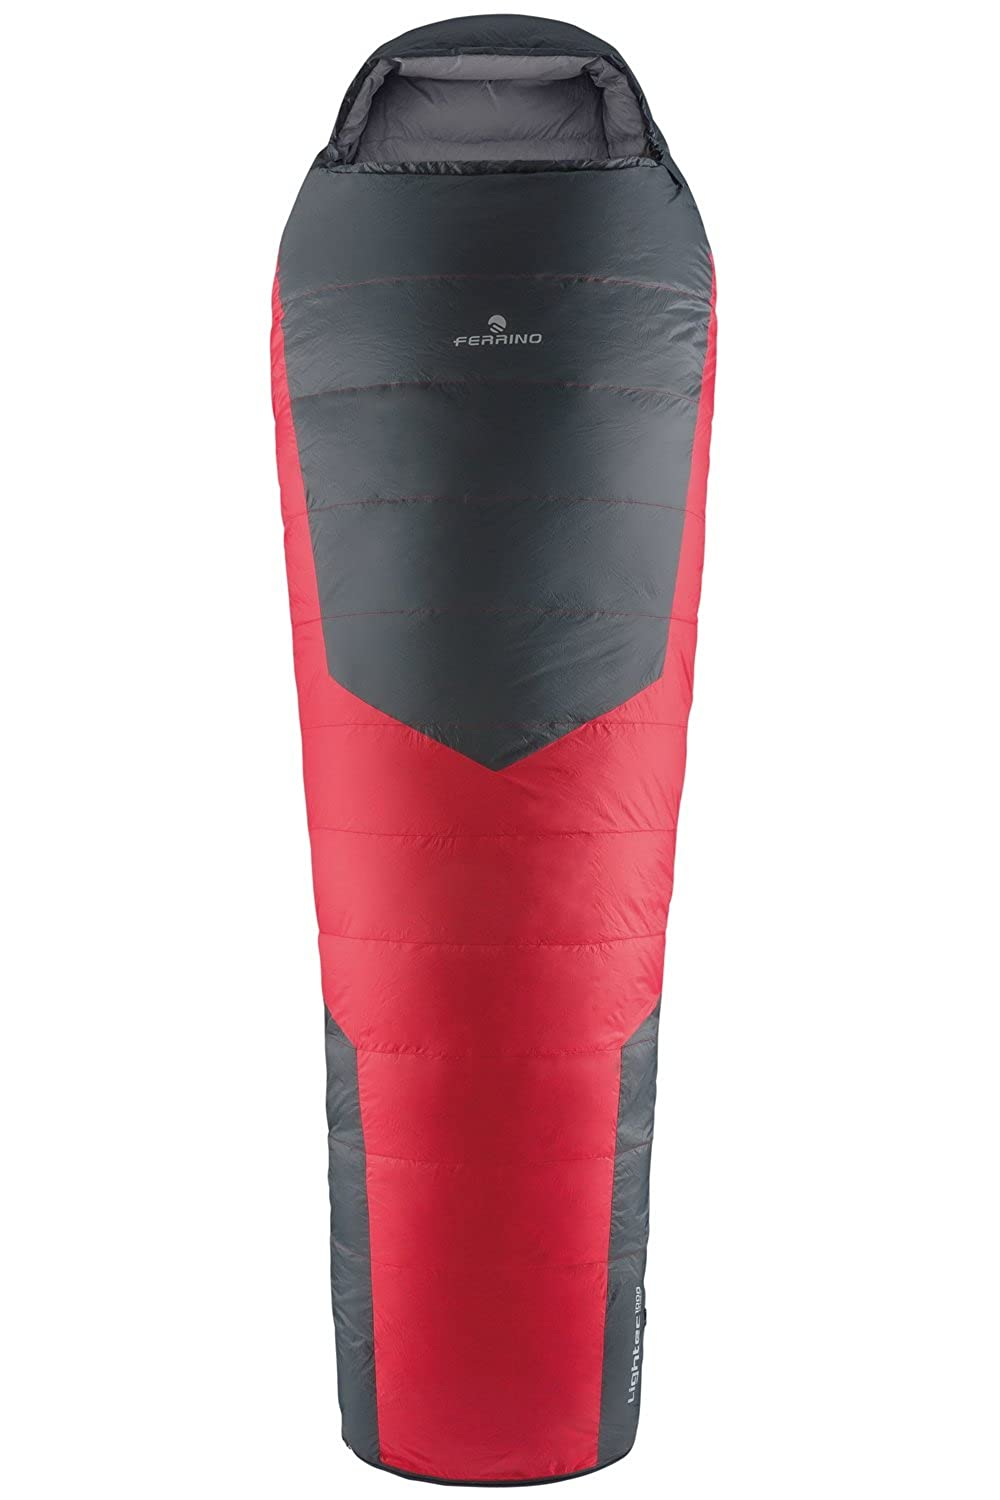 Ferrino Lightec 800 Duvet Saccoletto de Plumas, Color Rojo: Amazon.es: Deportes y aire libre